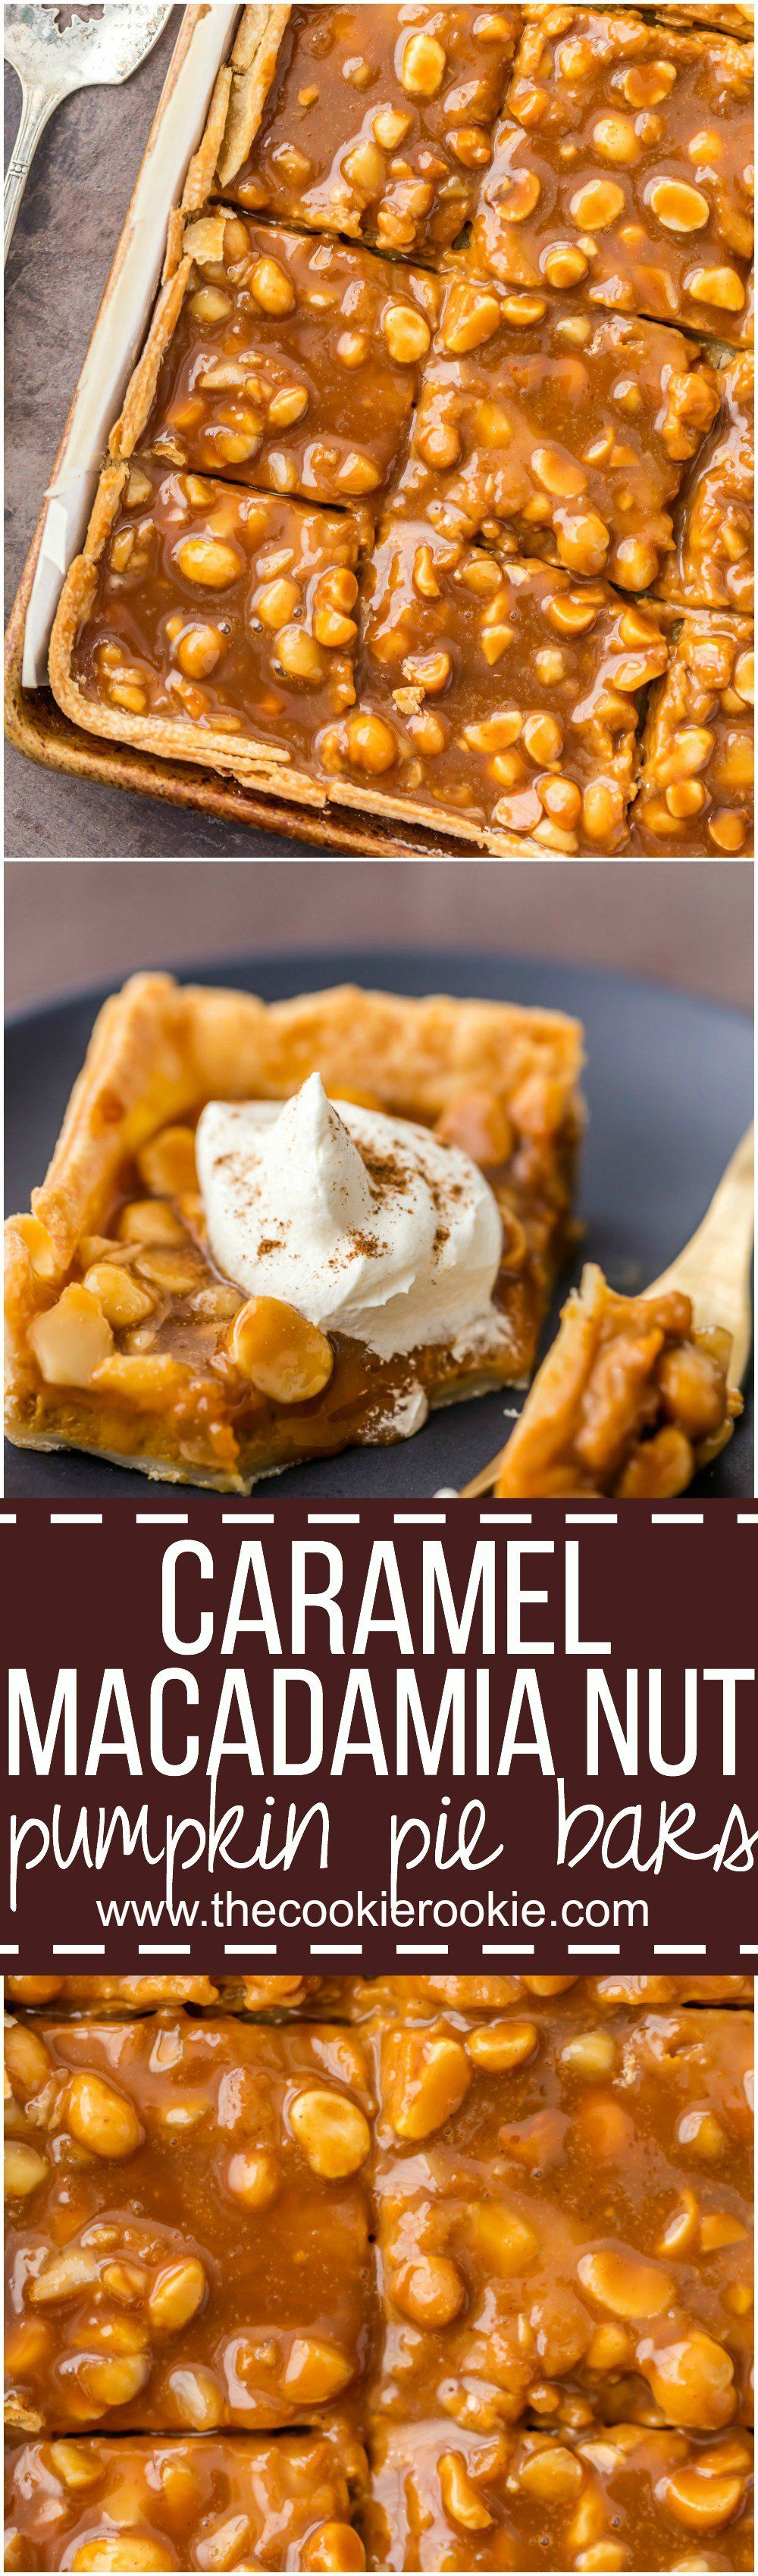 Caramel Macadamia Nut Pumpkin Bars!! Absolutely love the sound of these! A twist on a classic that would definitely be so delicious!!